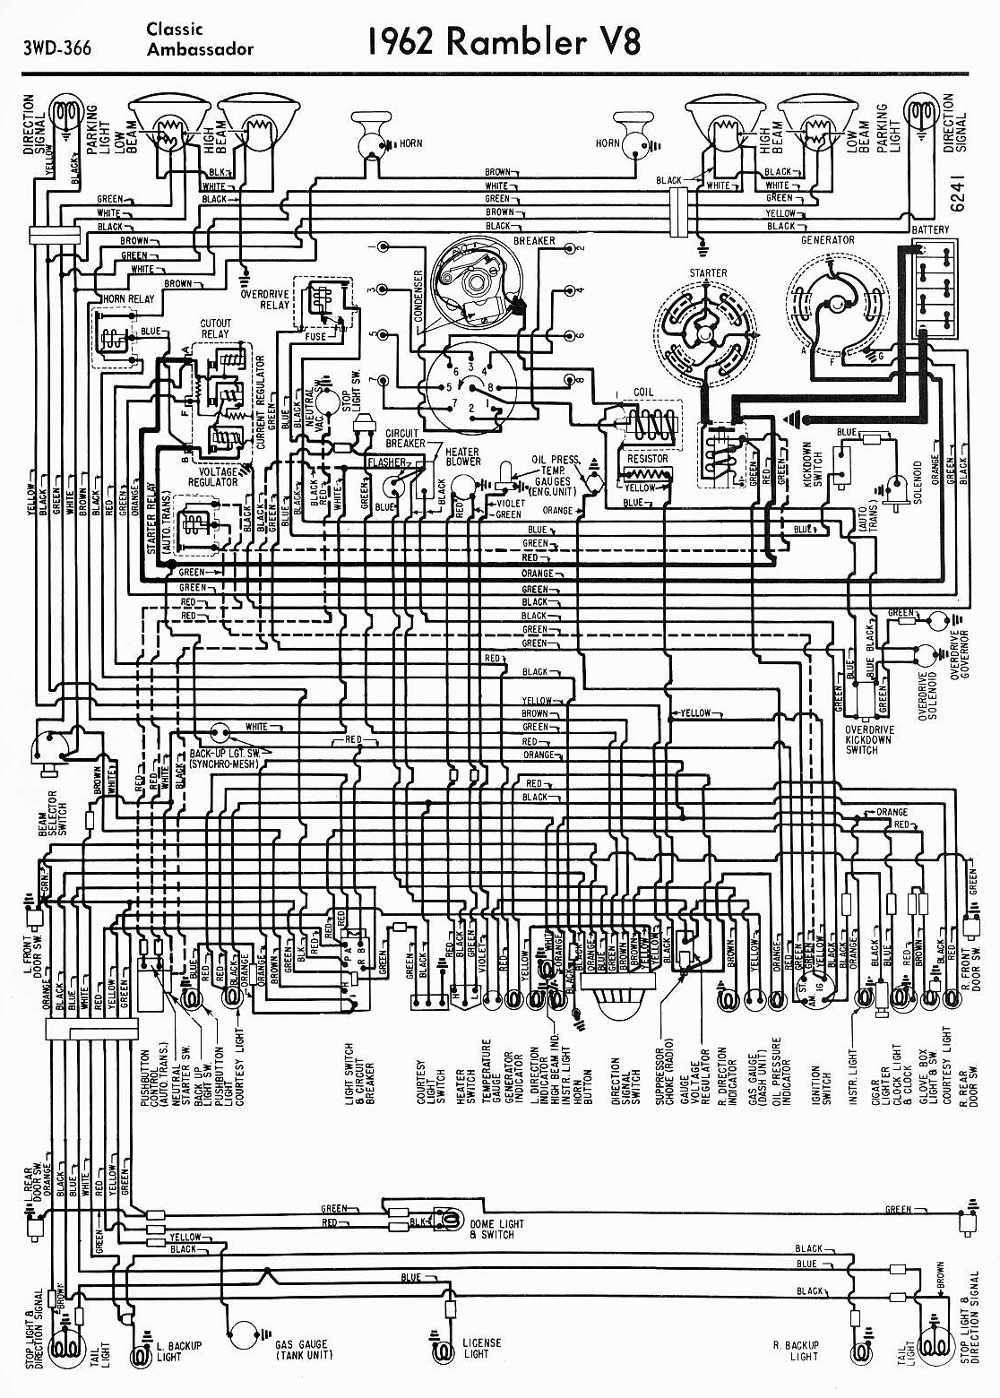 Snap Aviation Schematics Wiring 26 Diagram Images Wire Amc Rambler Harness Diagrams Mifinderco